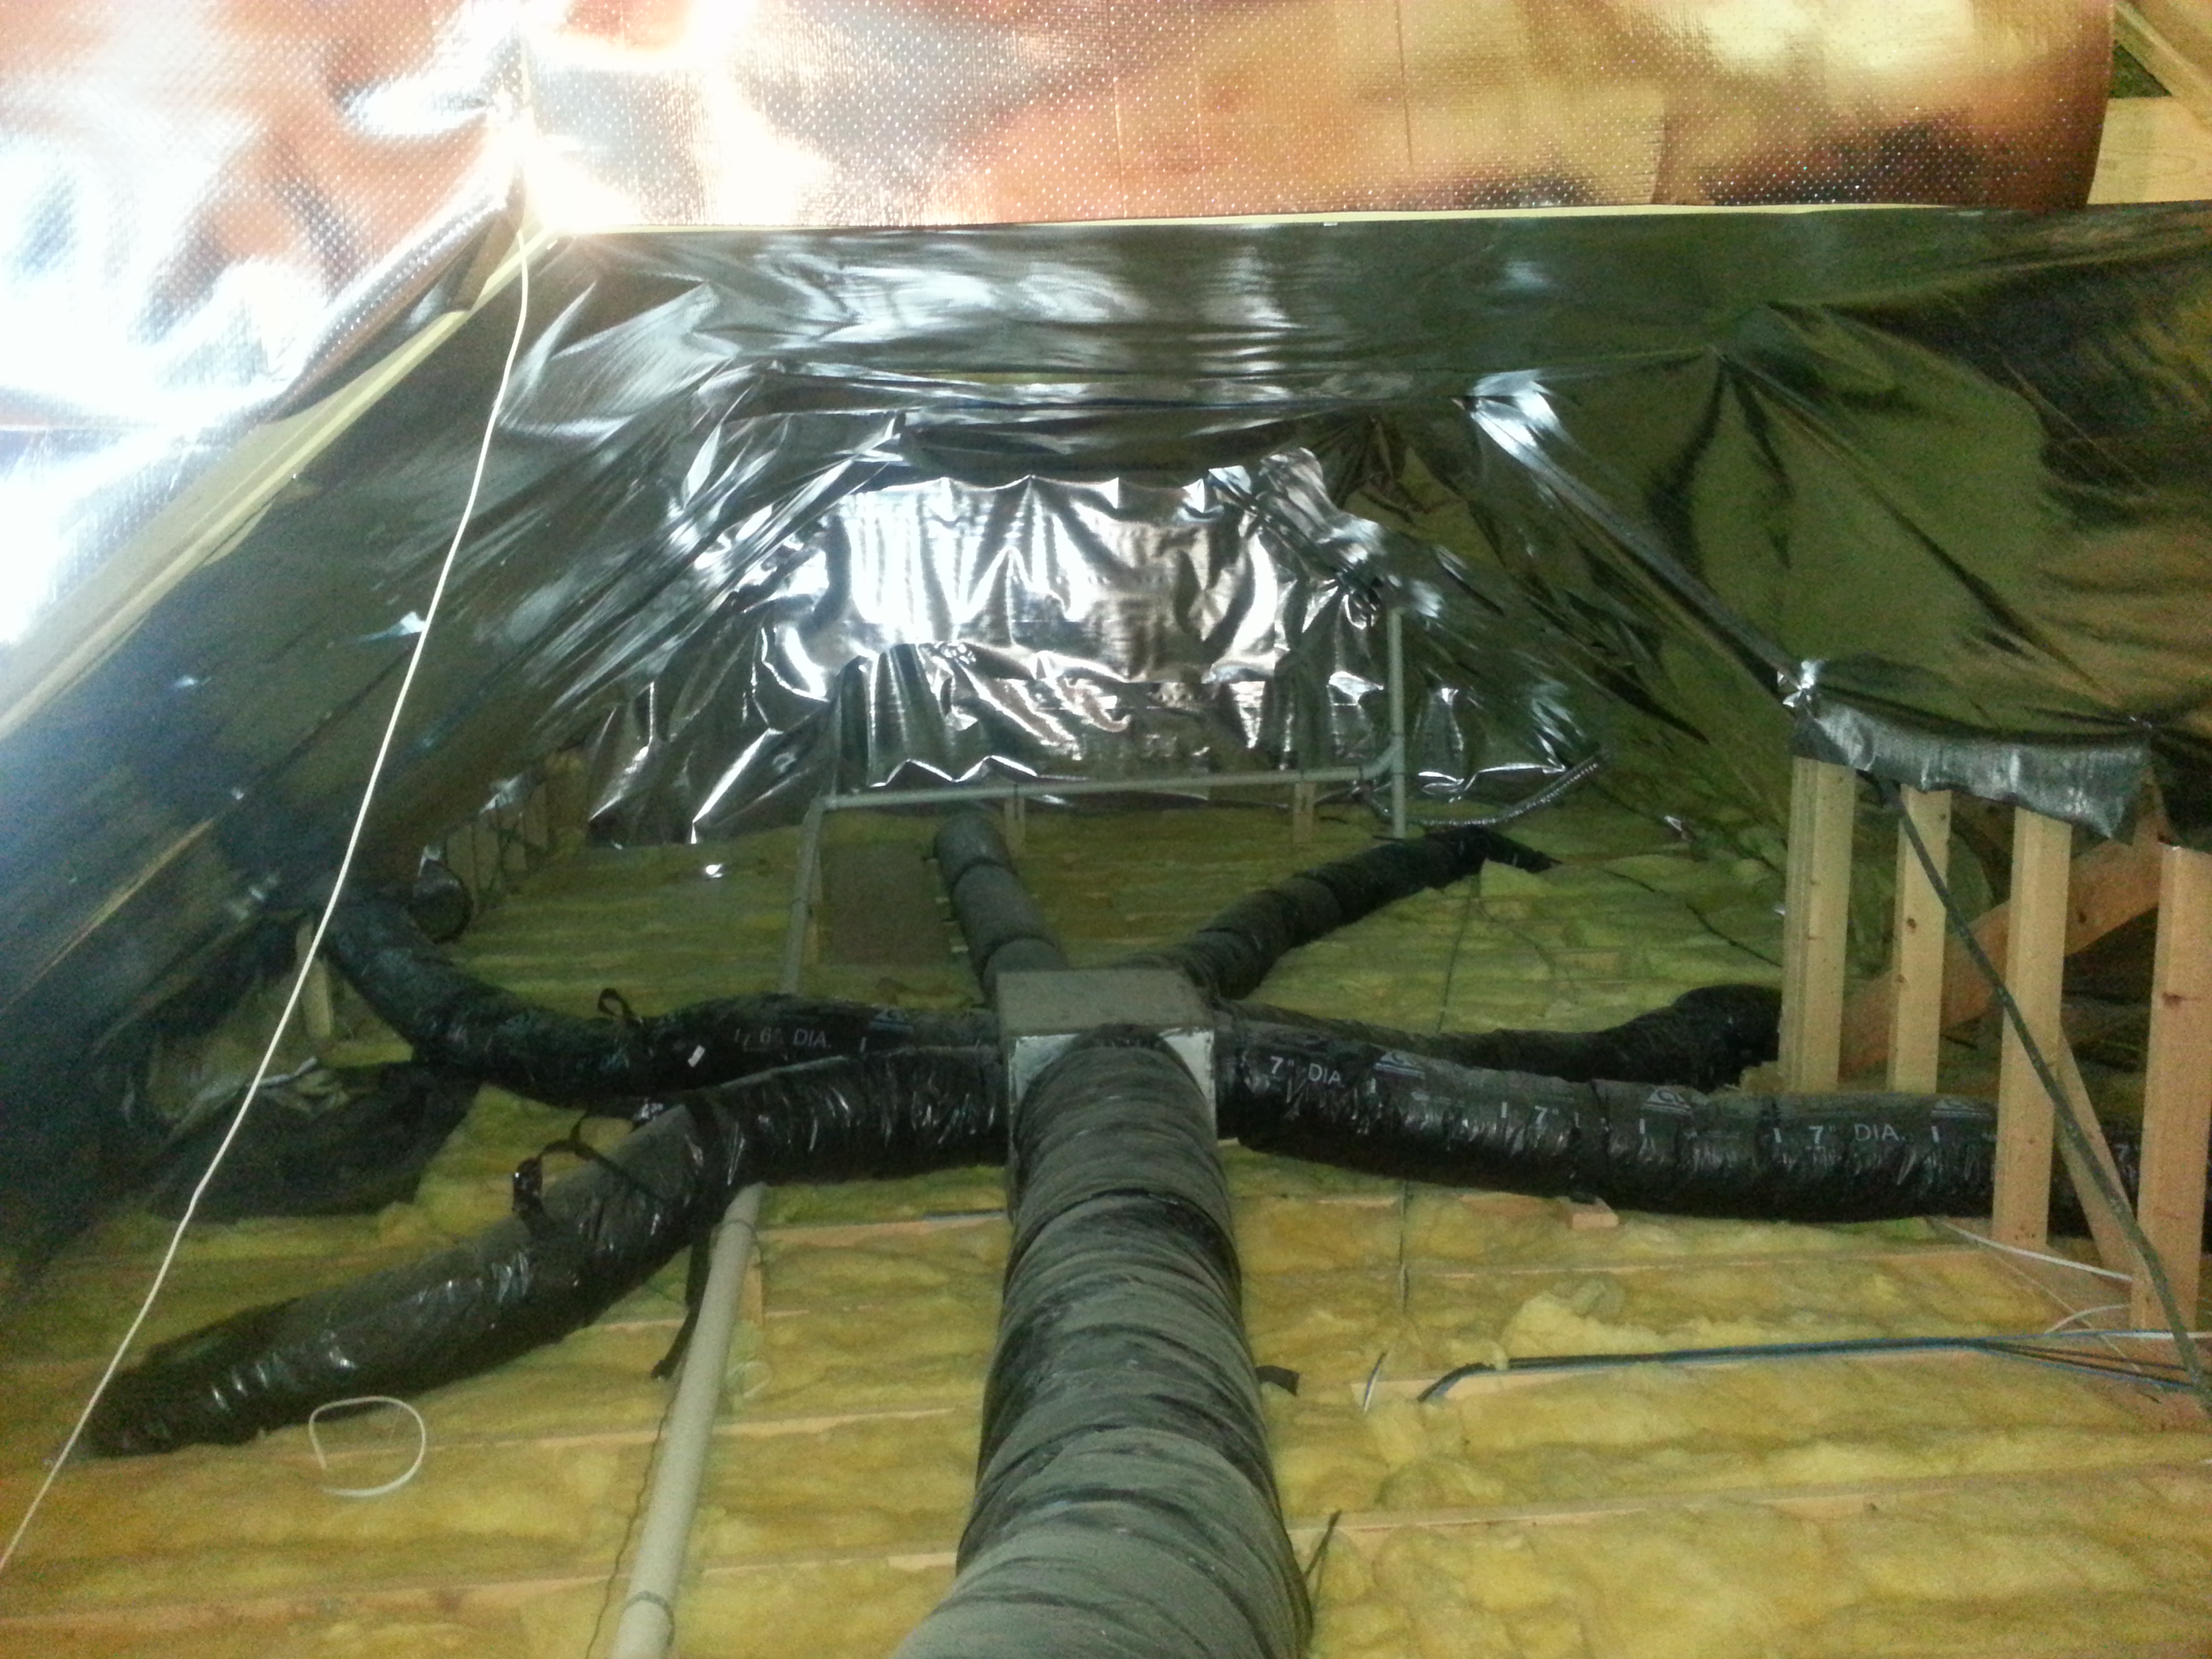 Radiant Barrier attic insulation. reflective attic insulation & radiant barrier | attic insulation | Reflective Insulation